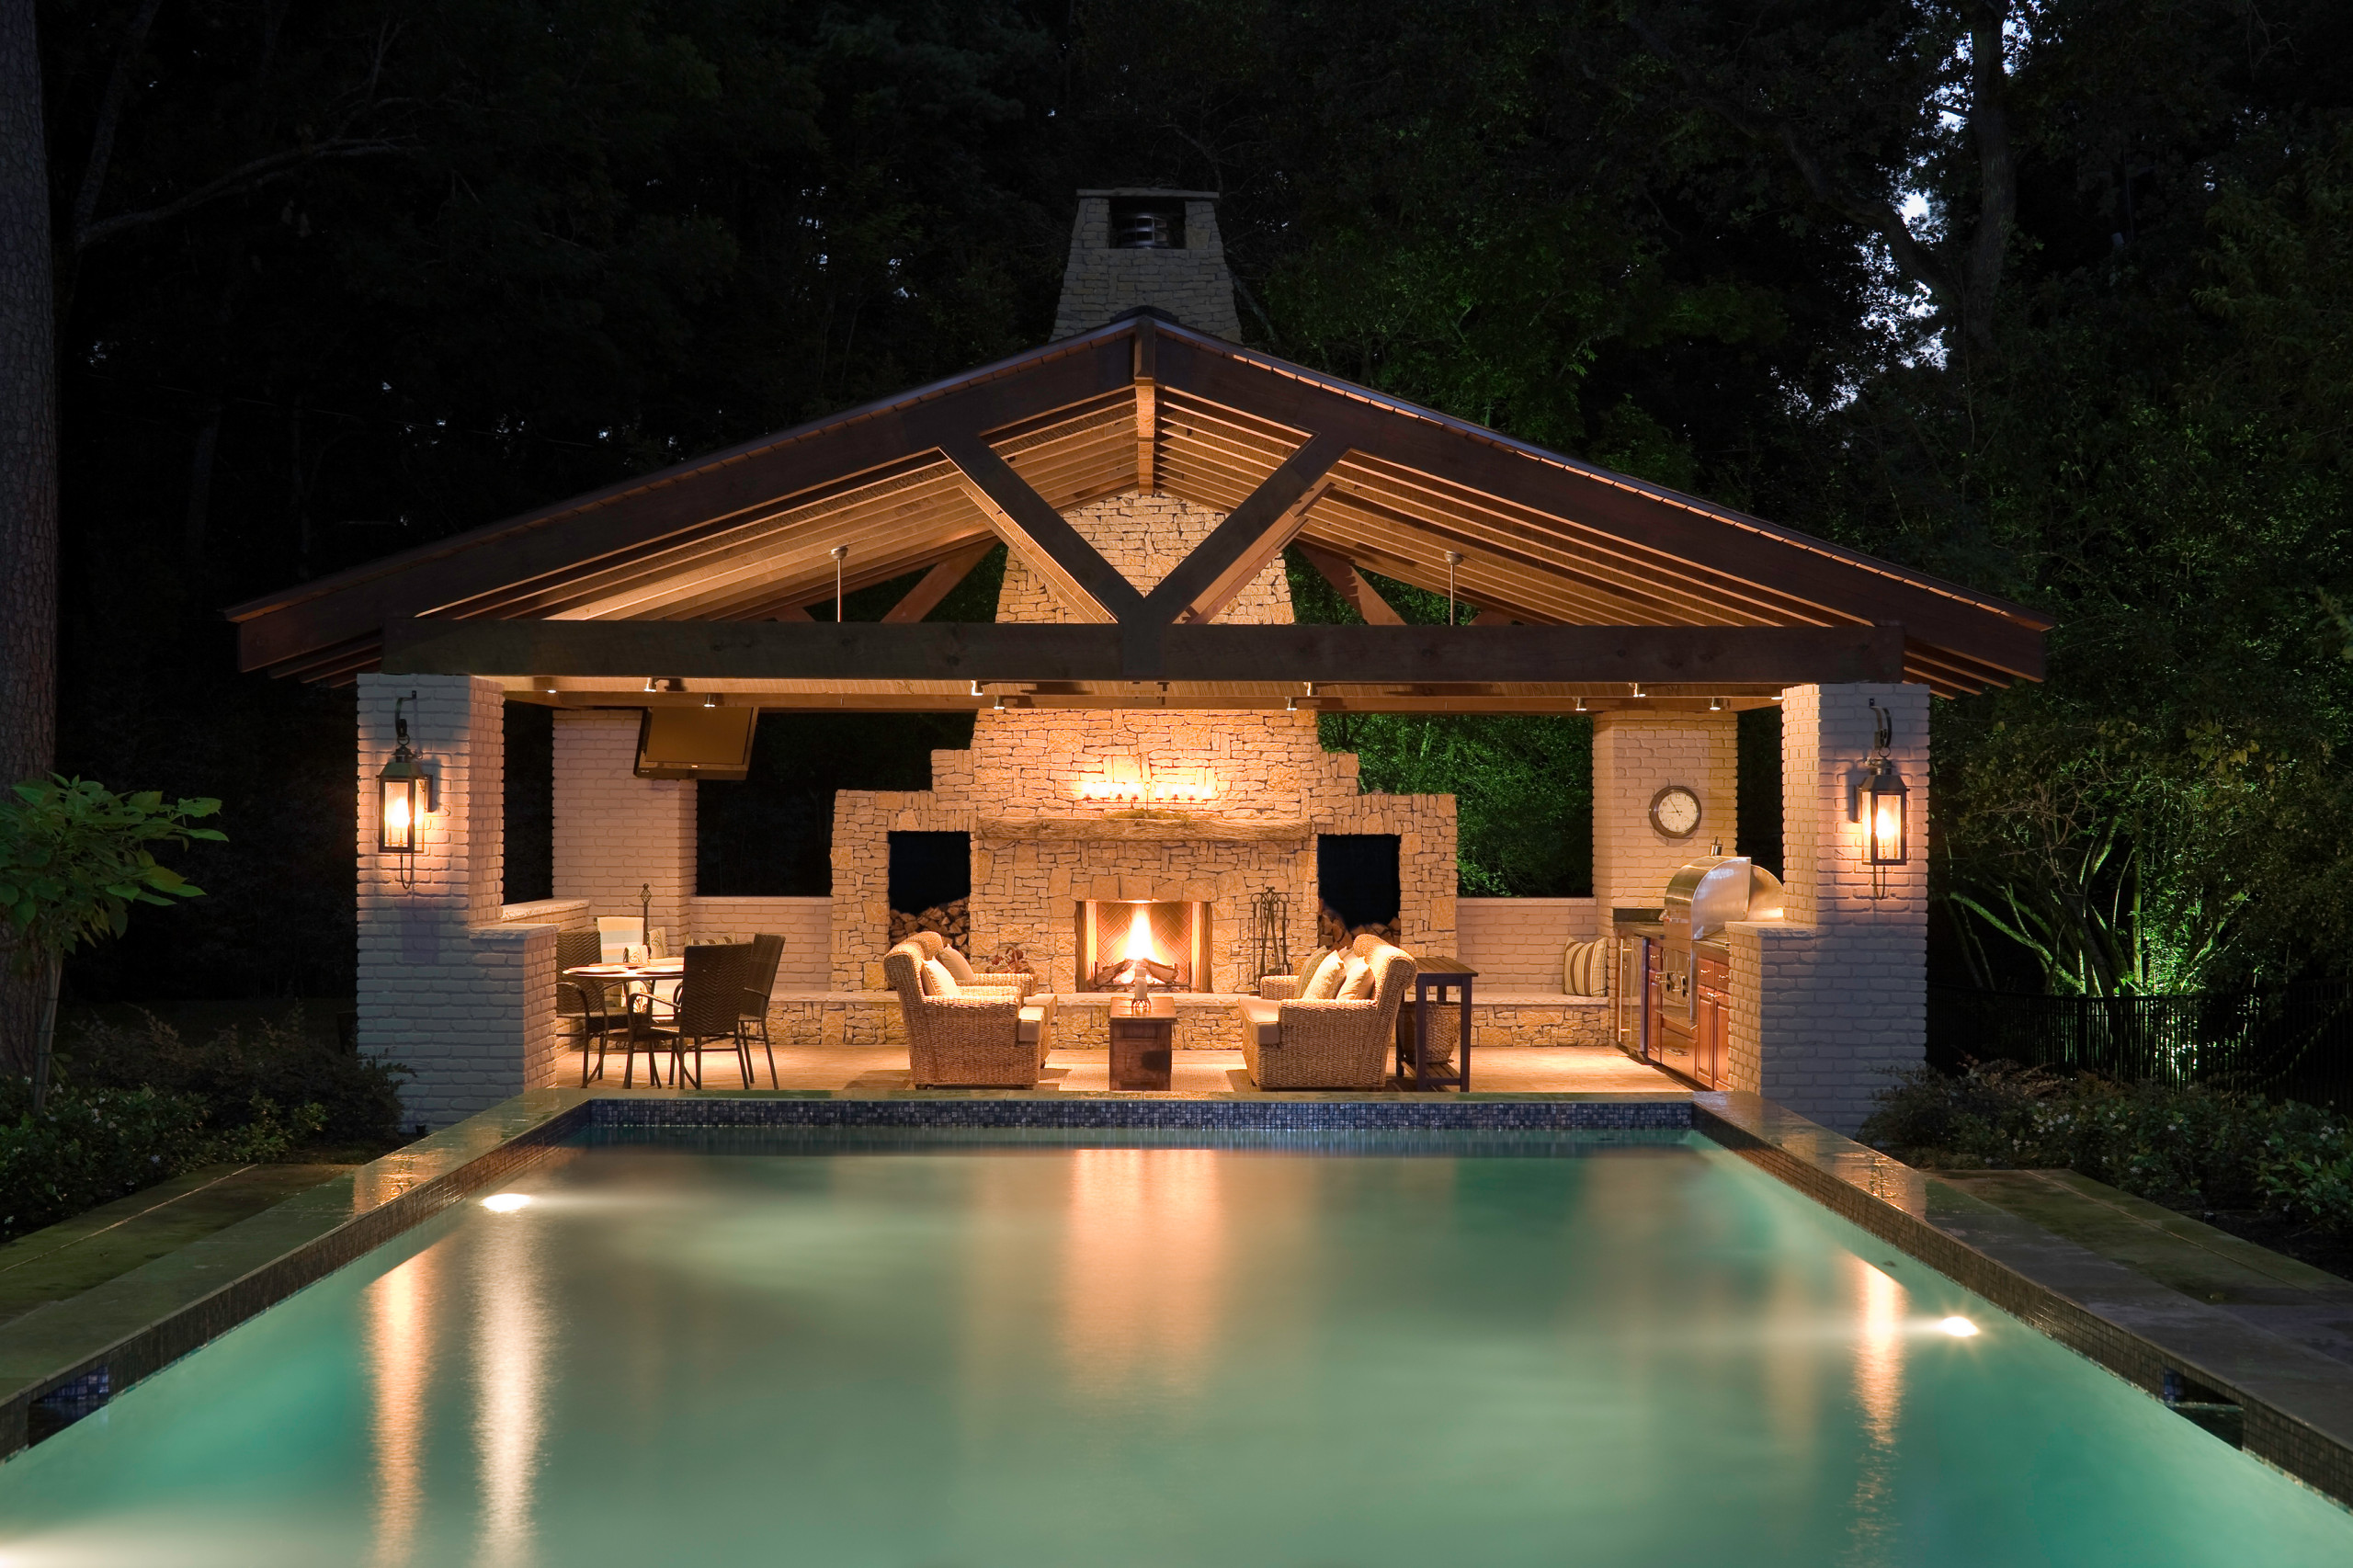 75 Beautiful Contemporary Pool House Pictures Ideas March 2021 Houzz